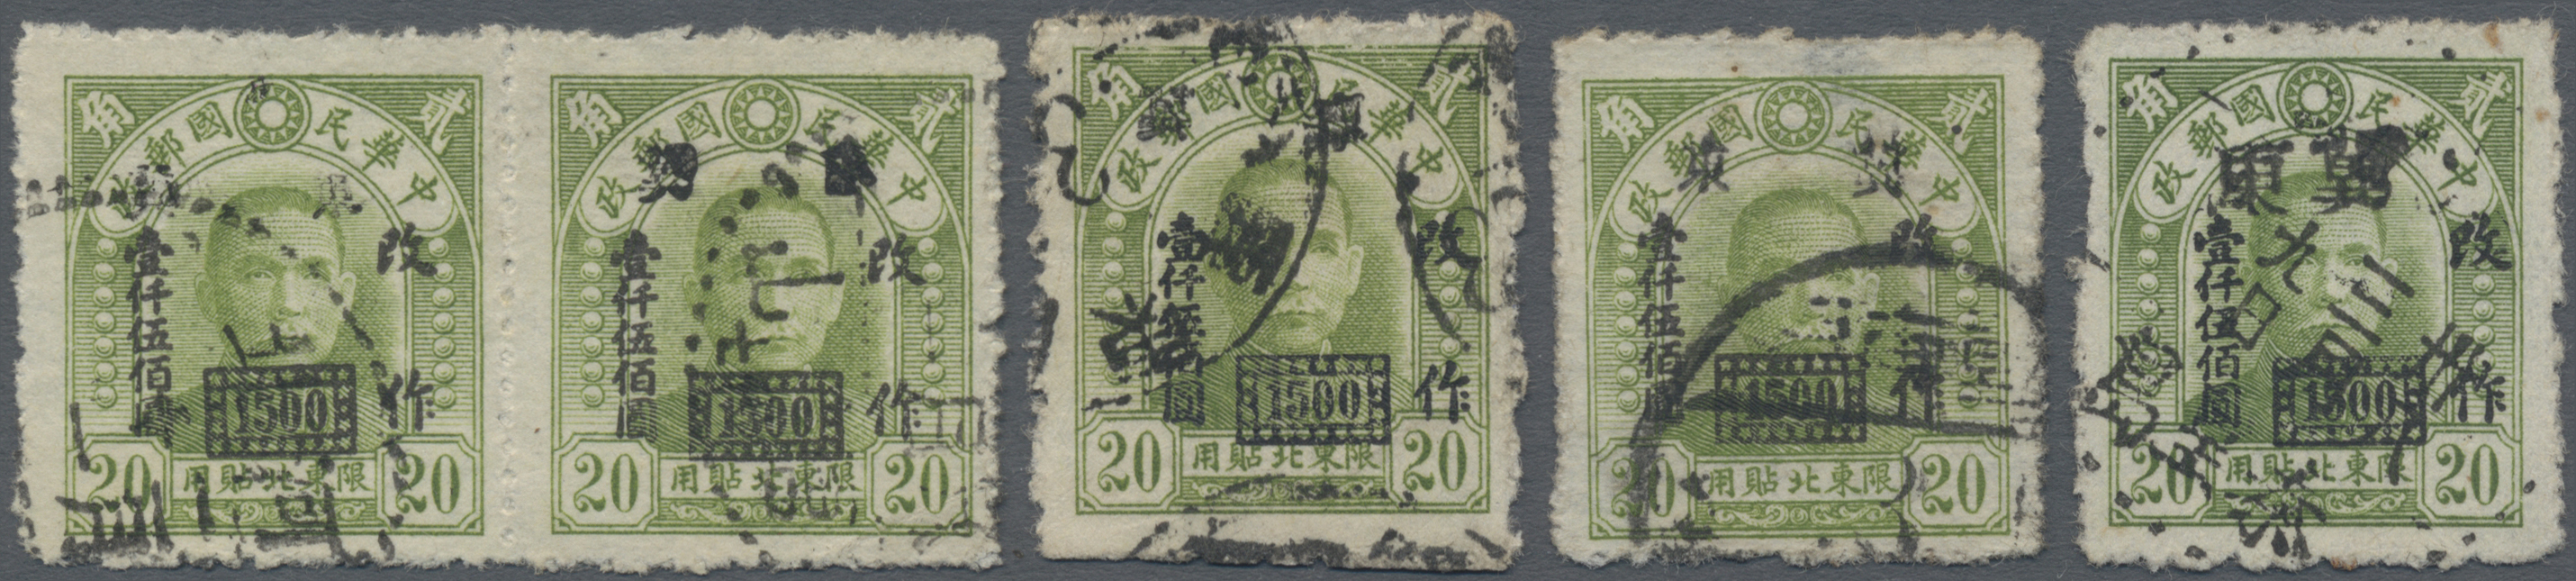 Lot 05516 - China - Volksrepublik - Provinzen  -  Auktionshaus Christoph Gärtner GmbH & Co. KG Sale #45- Special Auction China